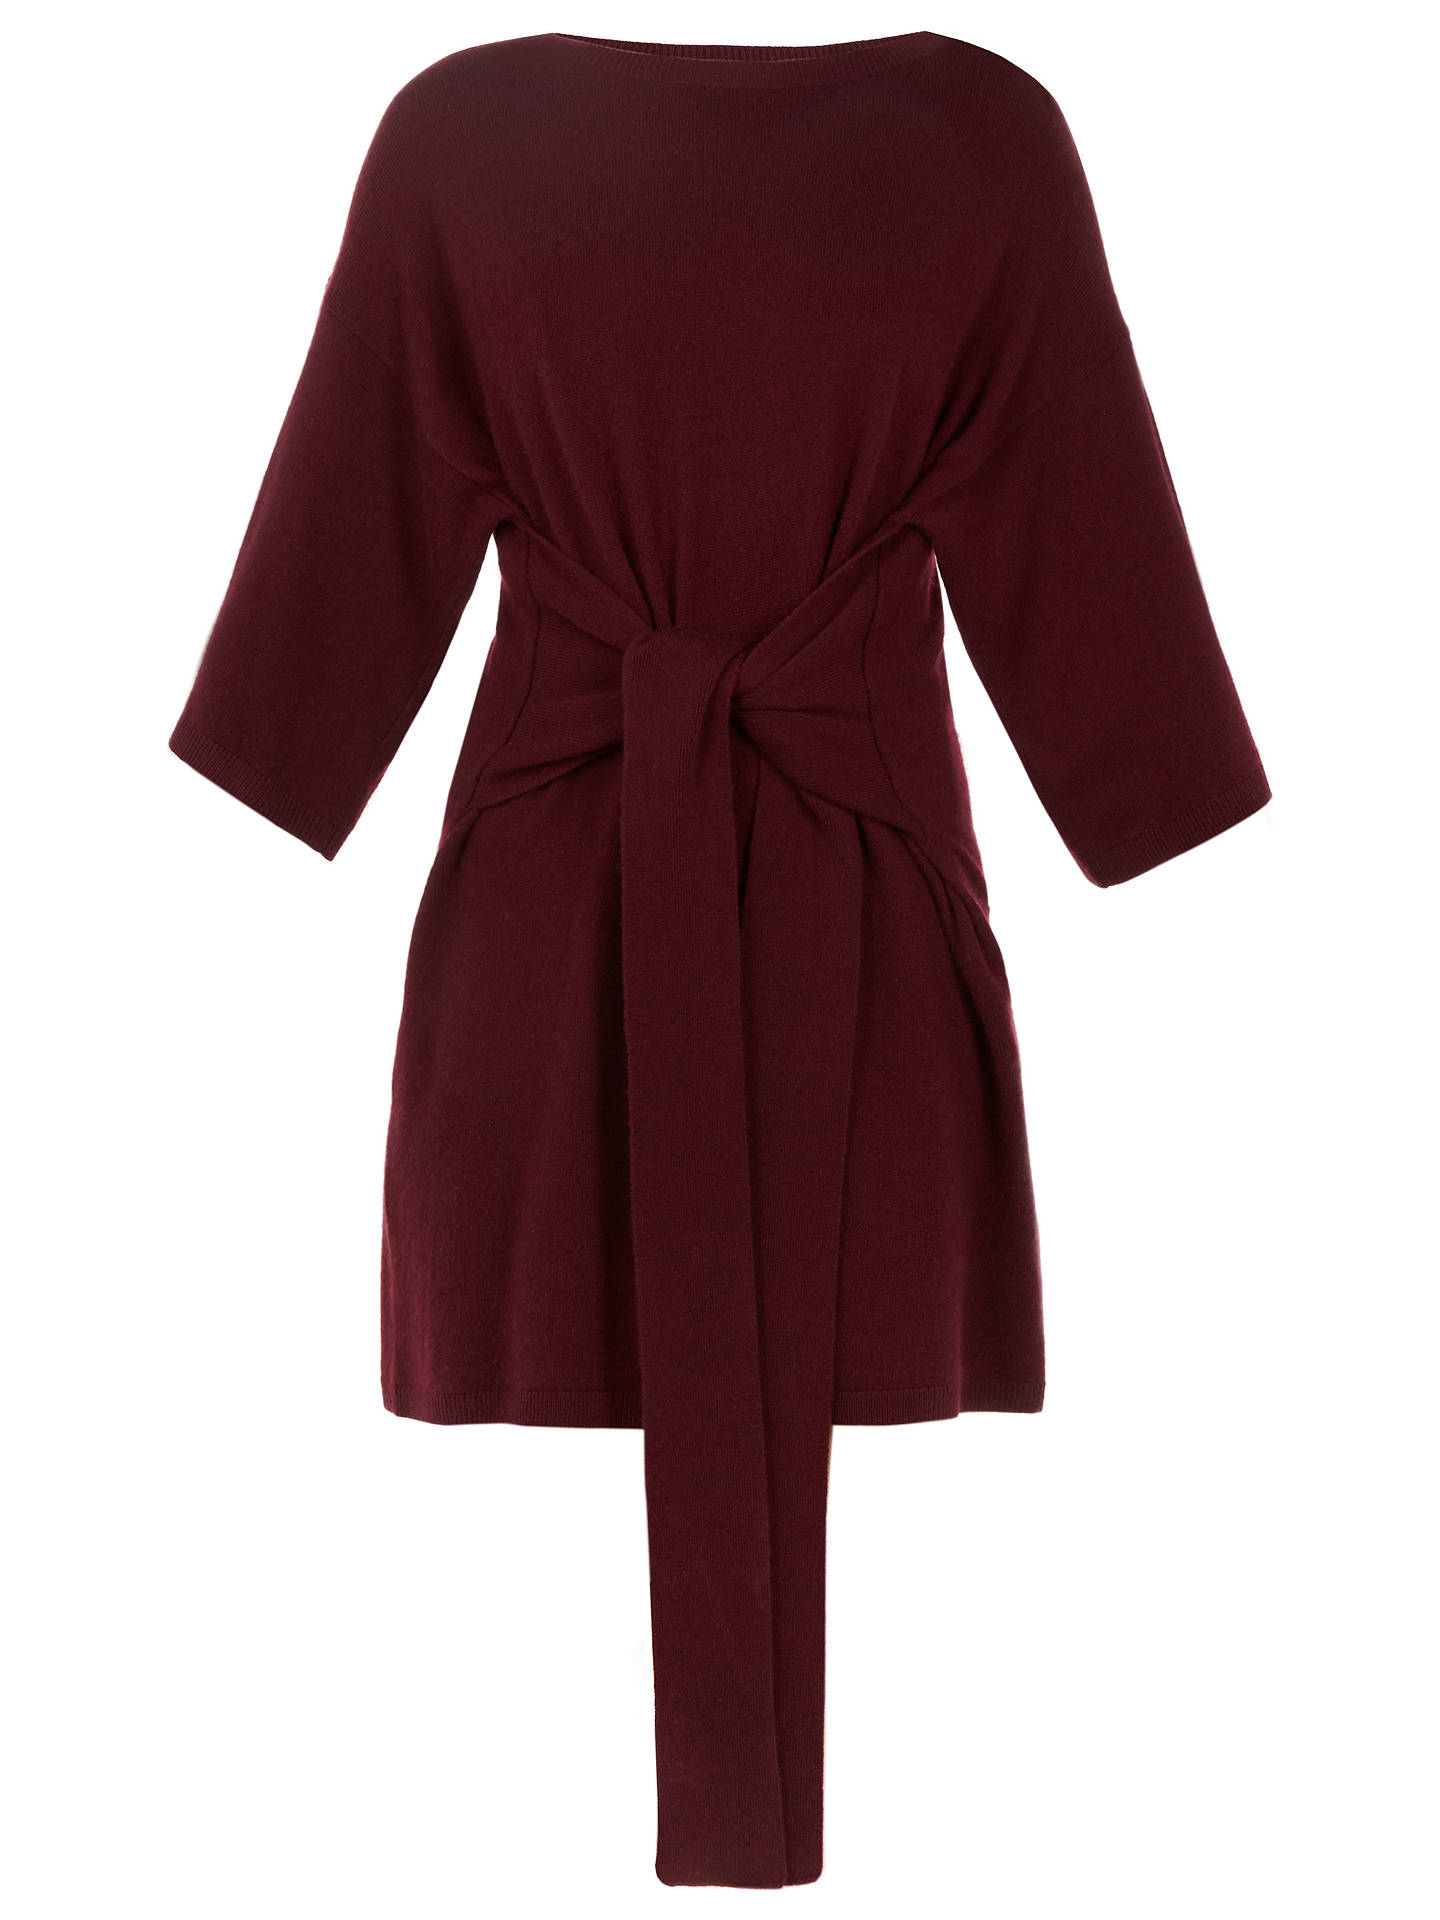 b4c5662563c5 ... Buy Ted Baker Ted Says Relax Olympy Tie Front Knitted Tunic Dress, Red,  2